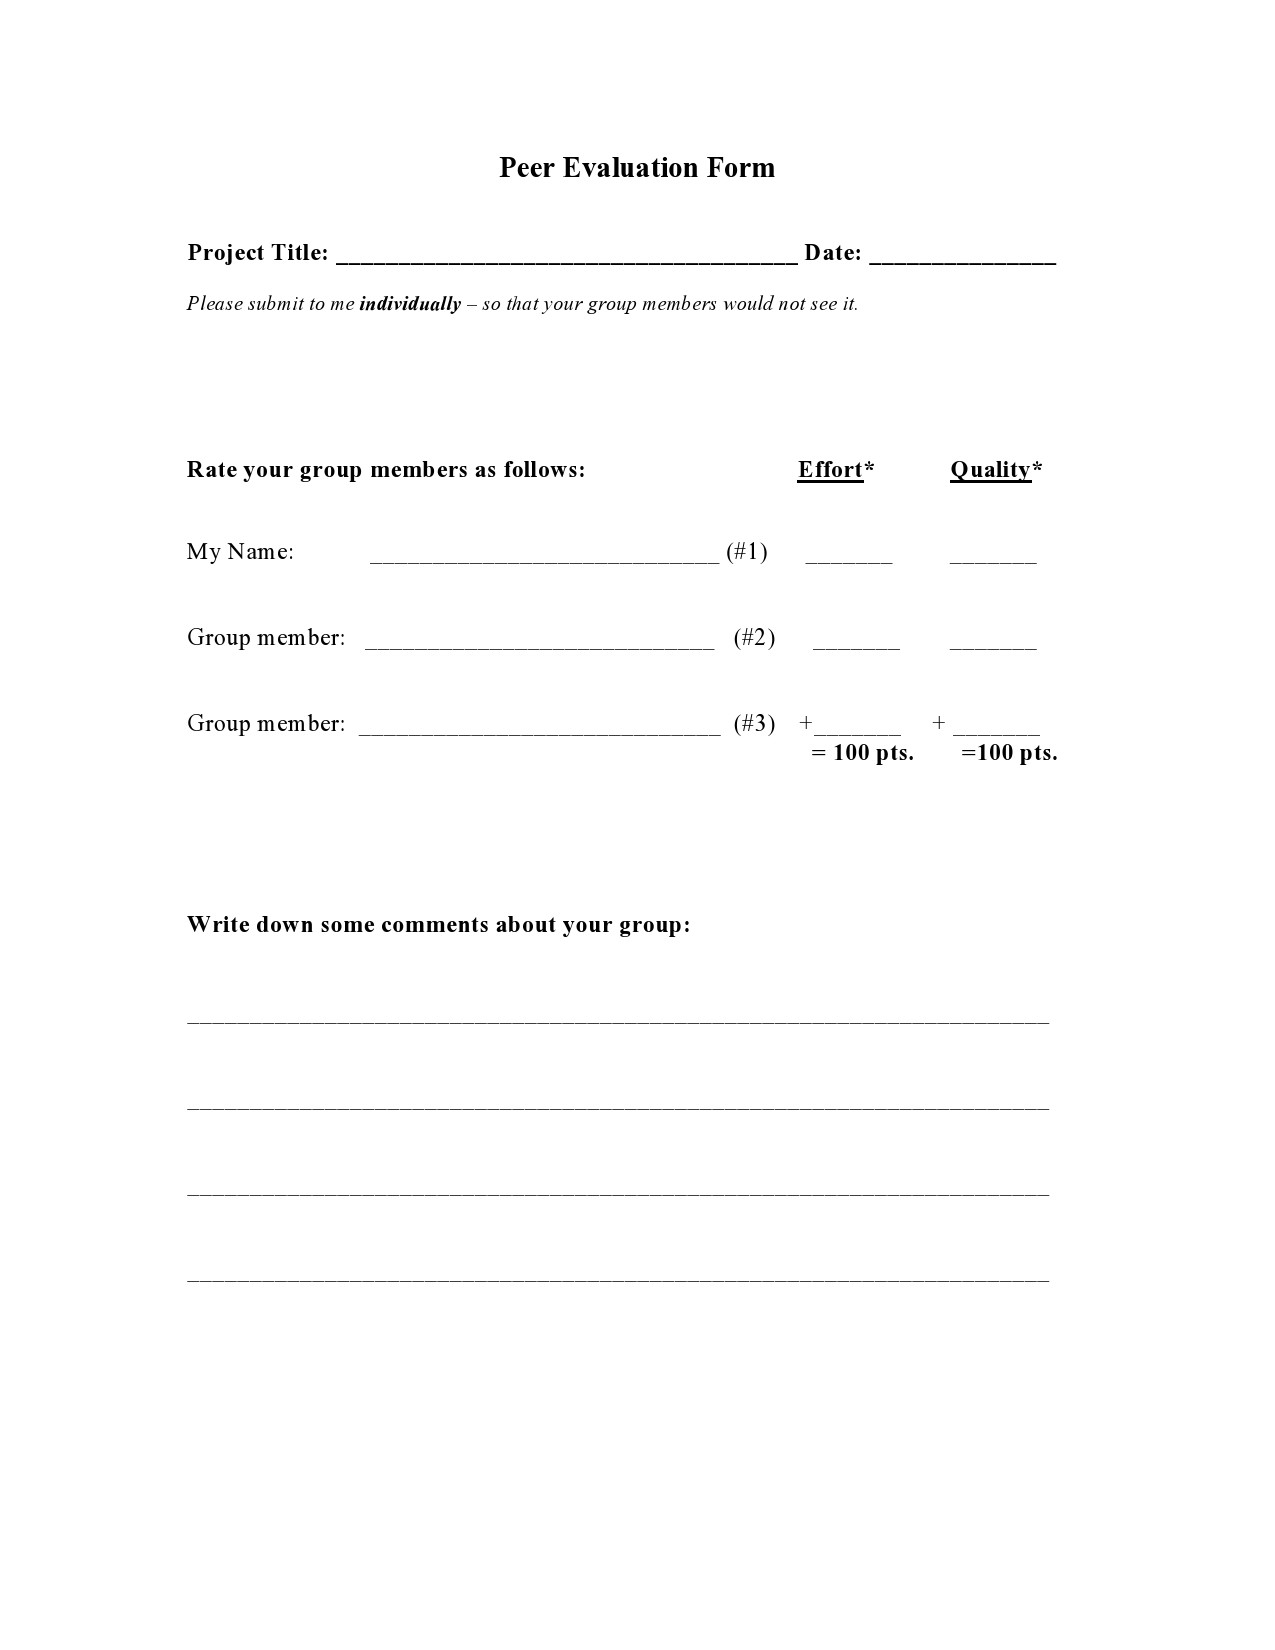 Free peer evaluation form 34